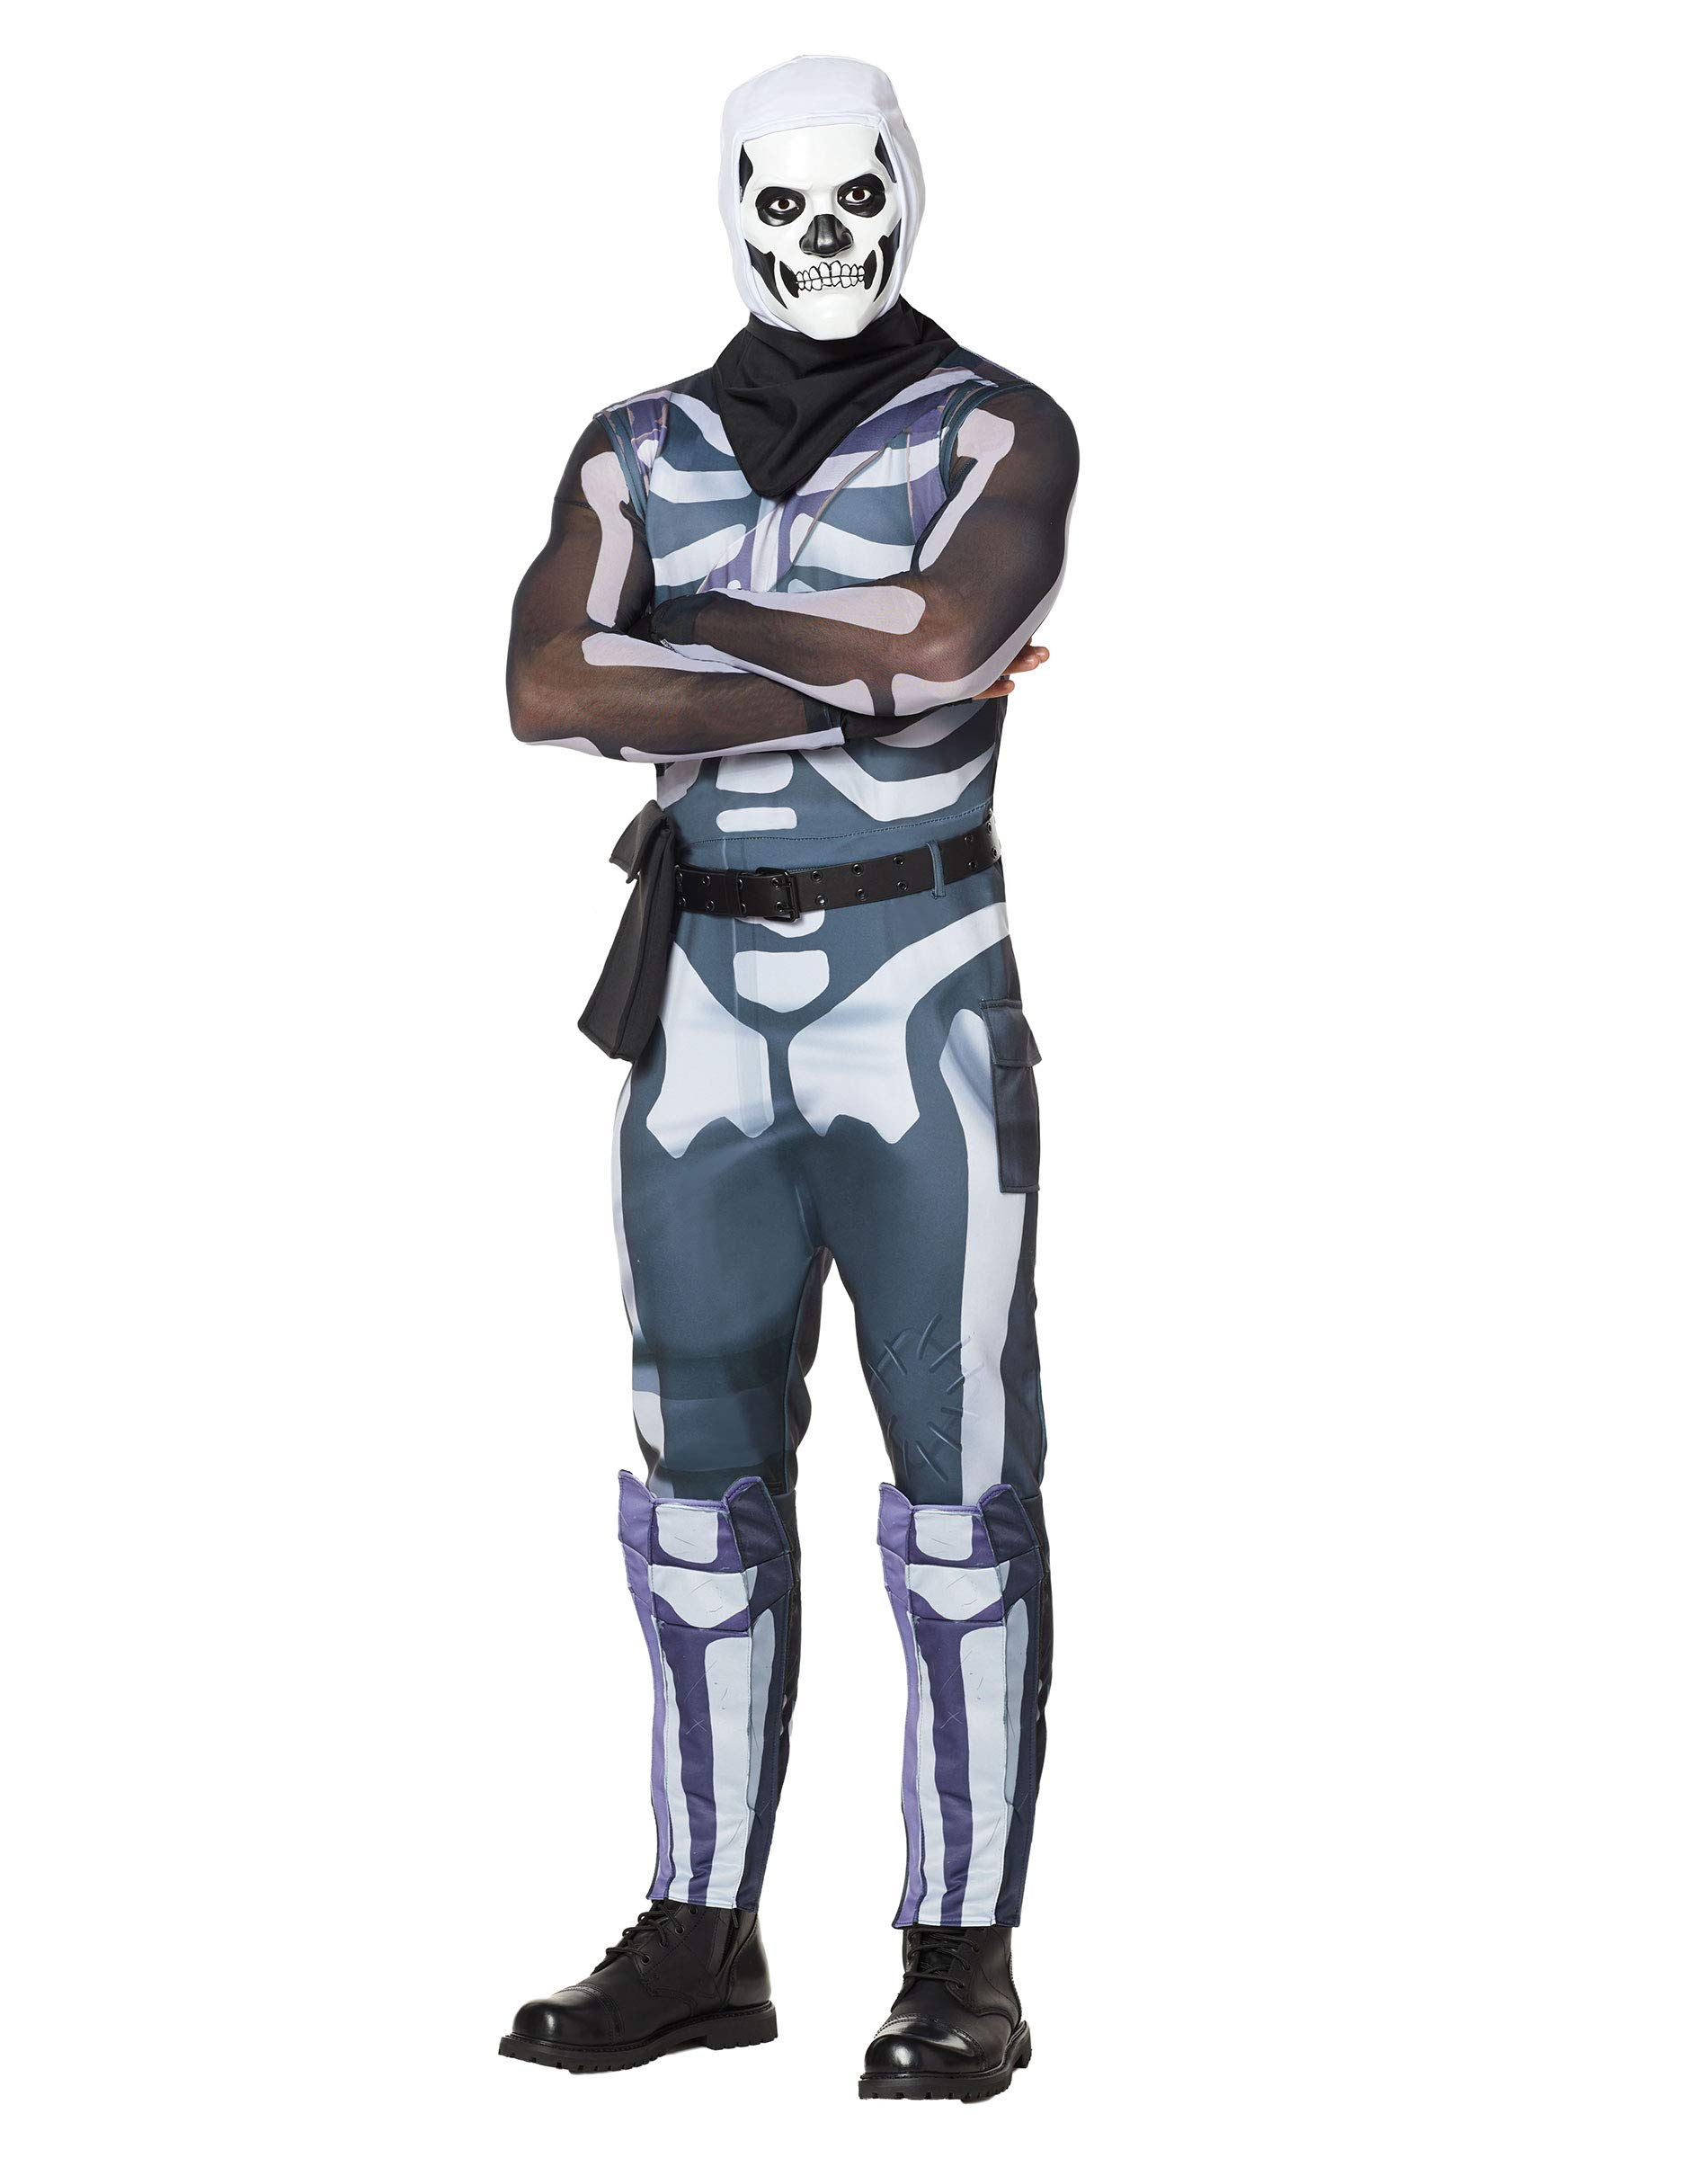 Fortnite Halloween Costumes 2019.Spirit Halloween Adult Fortnite Skull Trooper Costume For Adults Officially Licensed 2019 Halloween Party Central Hallowmix